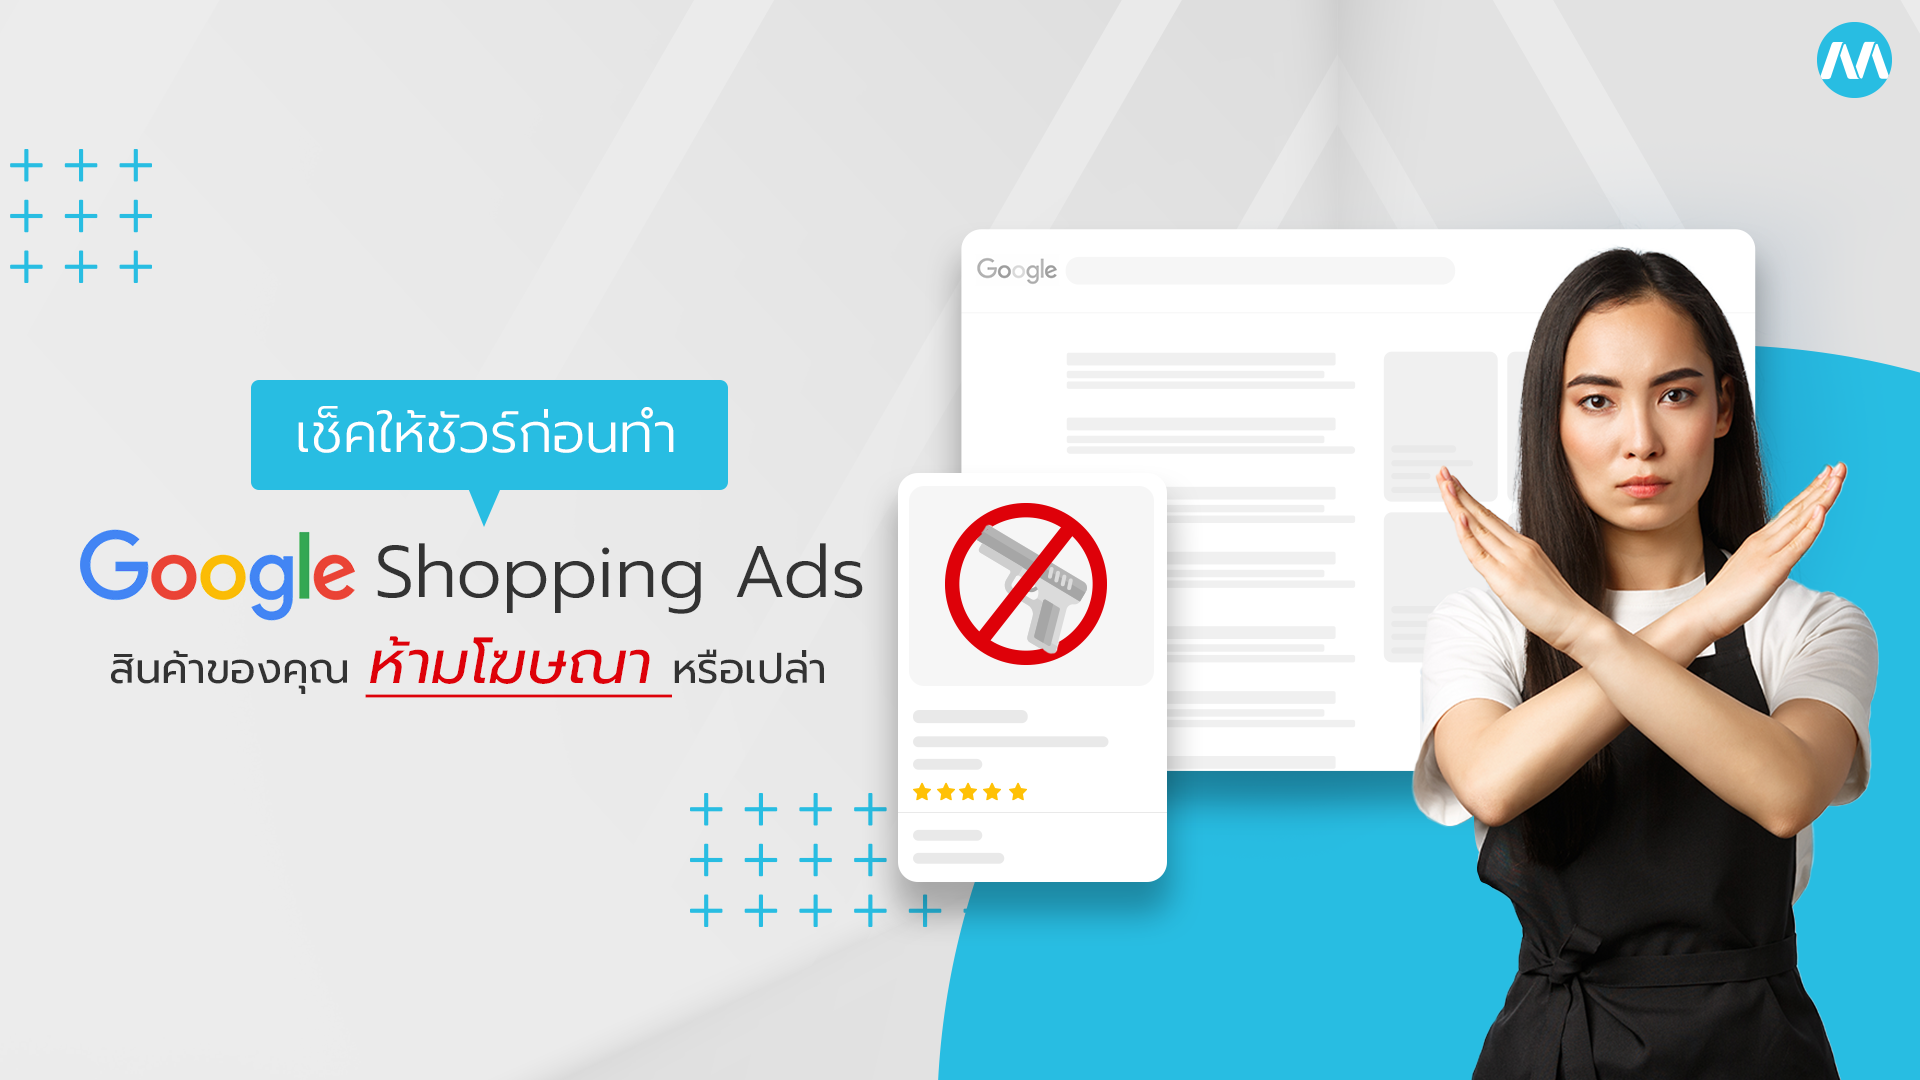 นโยบาย google shopping ads